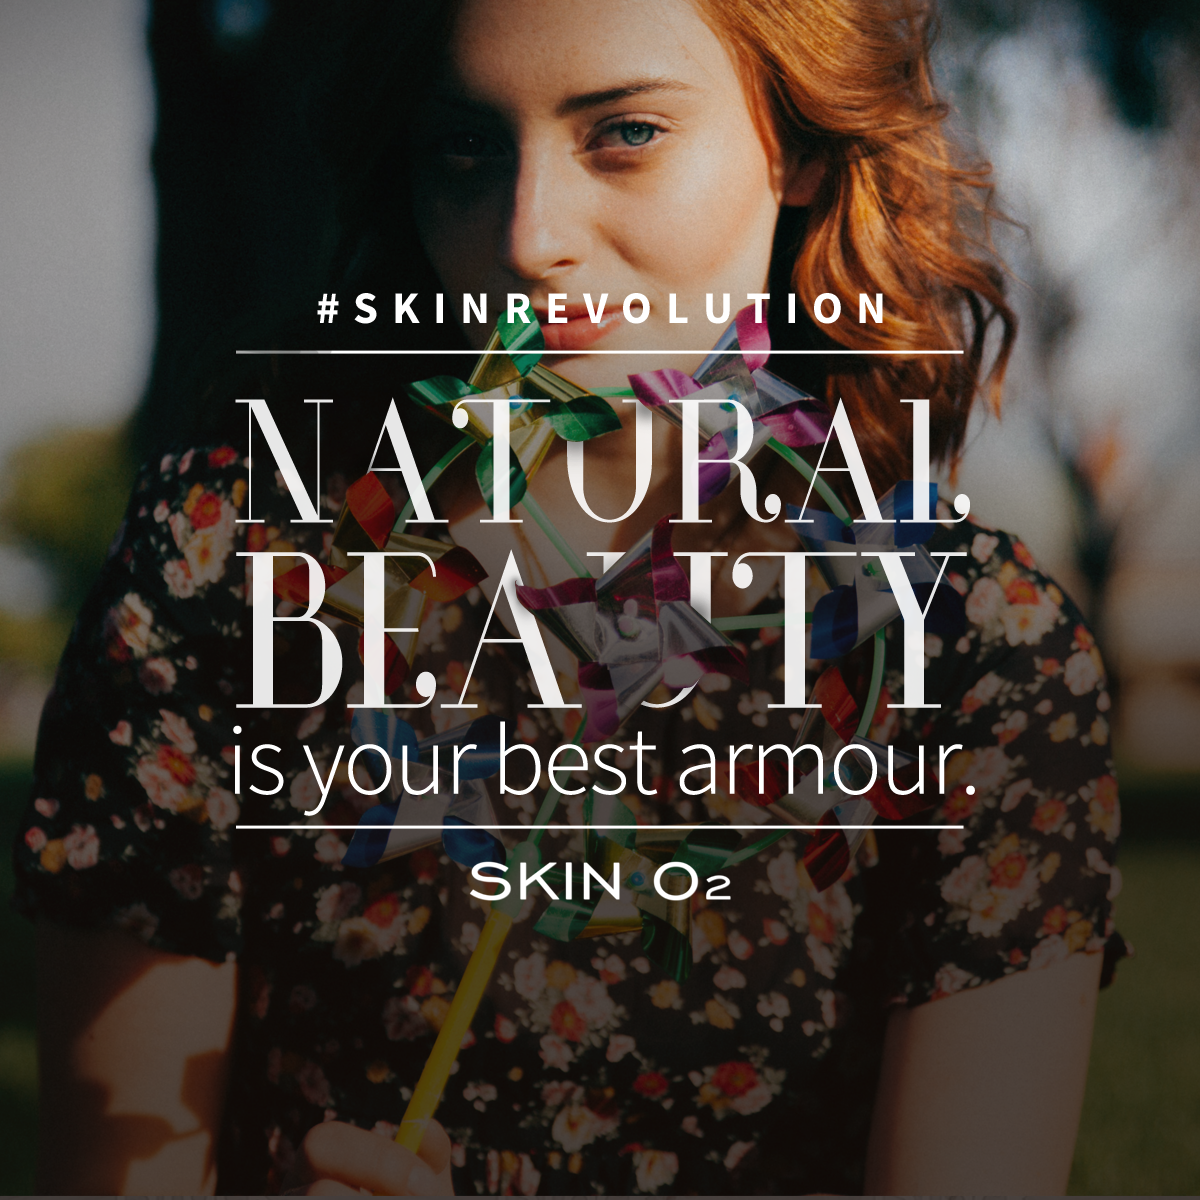 Nothing beats naturally great skin. SkinRevolution